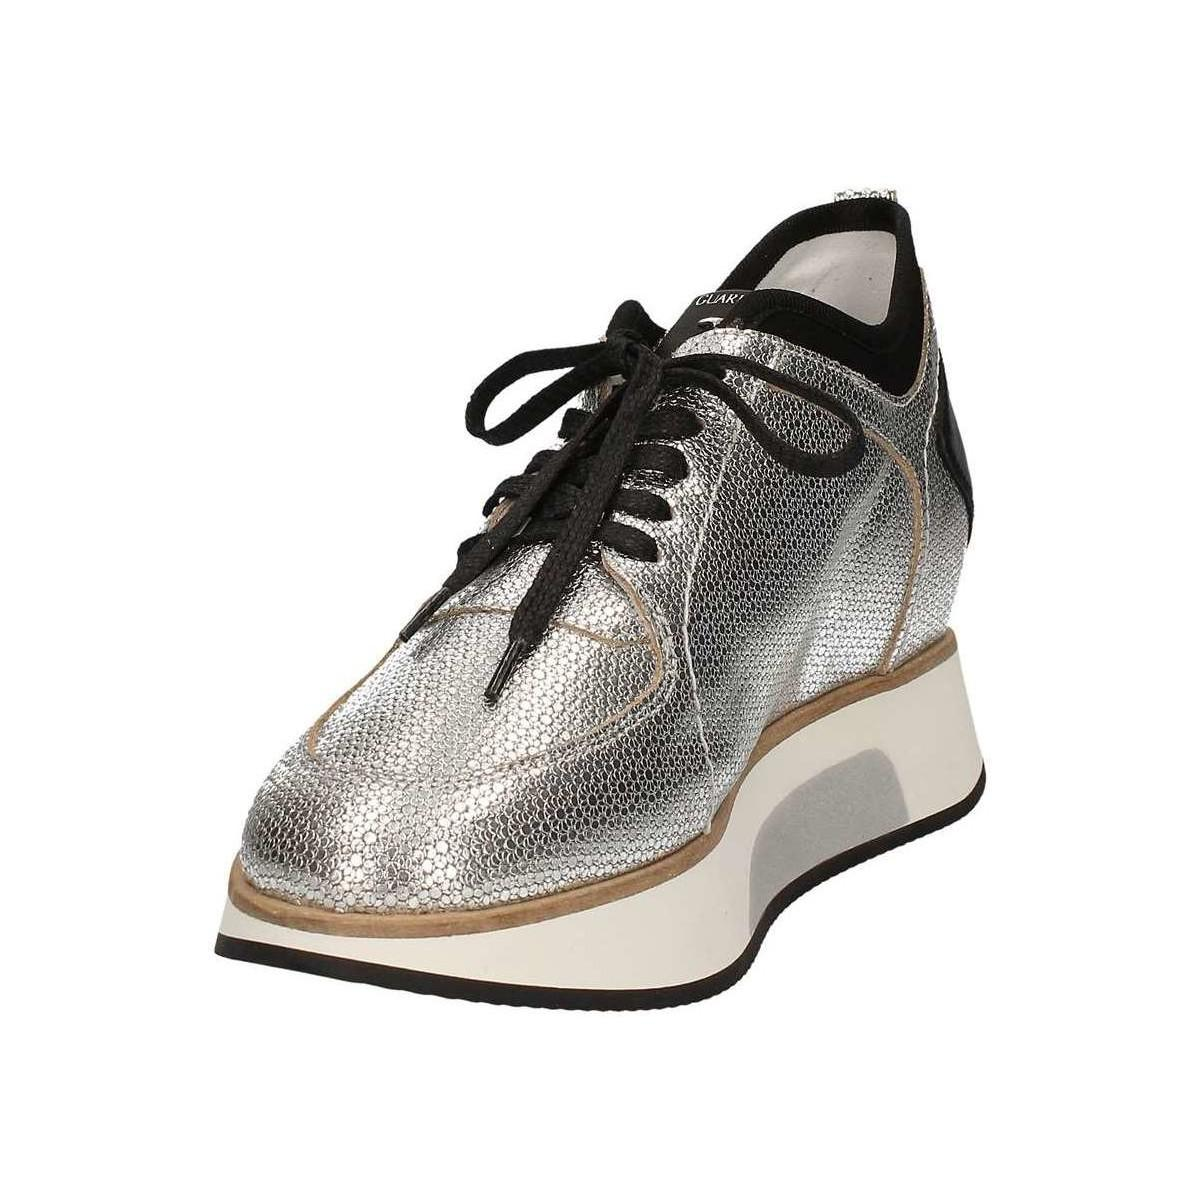 Alberto Guardiani Sd58545e Shoes With Laces Women Grey Women's Walking Boots In Grey in Grey